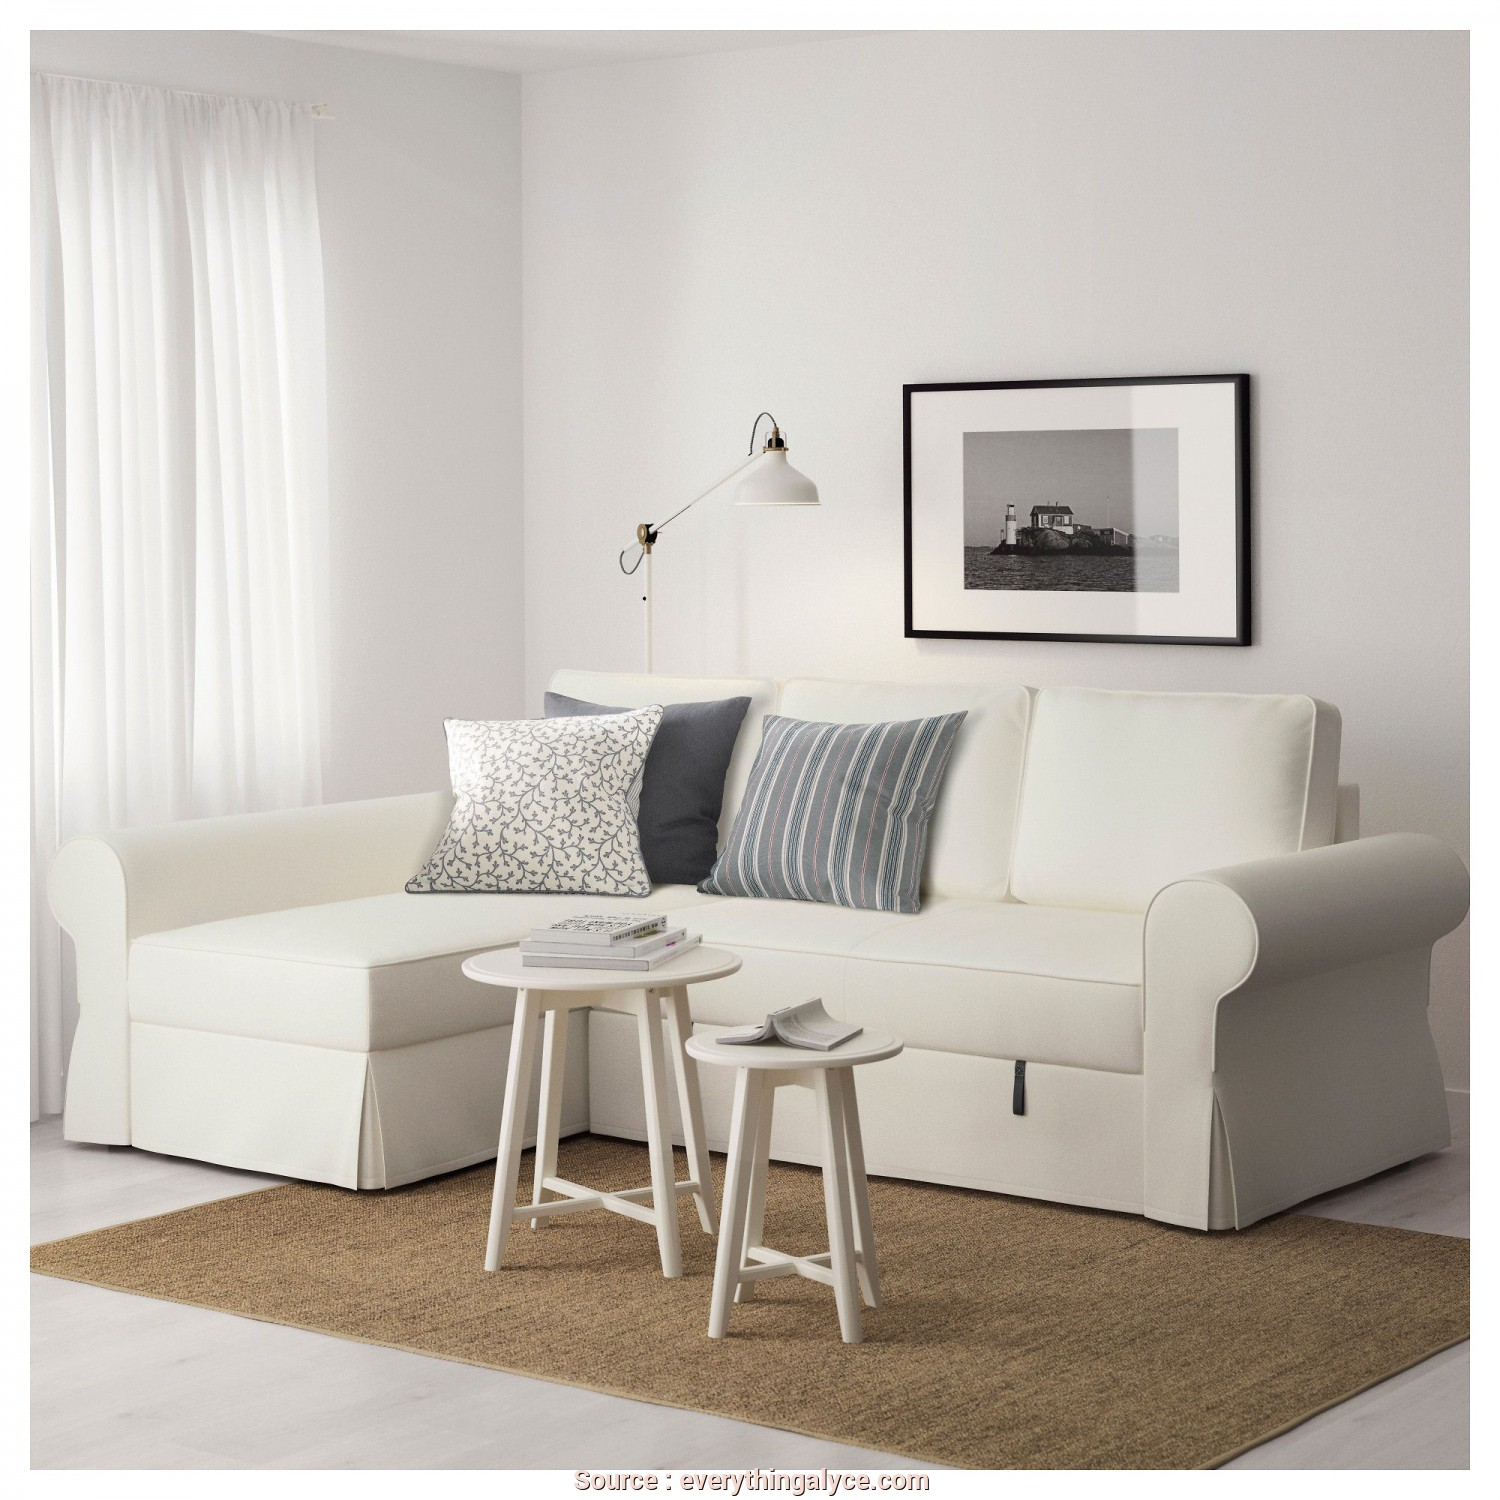 Ikea Backabro Reviews, Maestoso Holmsund Sofa, Review Awesome Ikea Backabro Sofa, With Chaise Longue Cabin